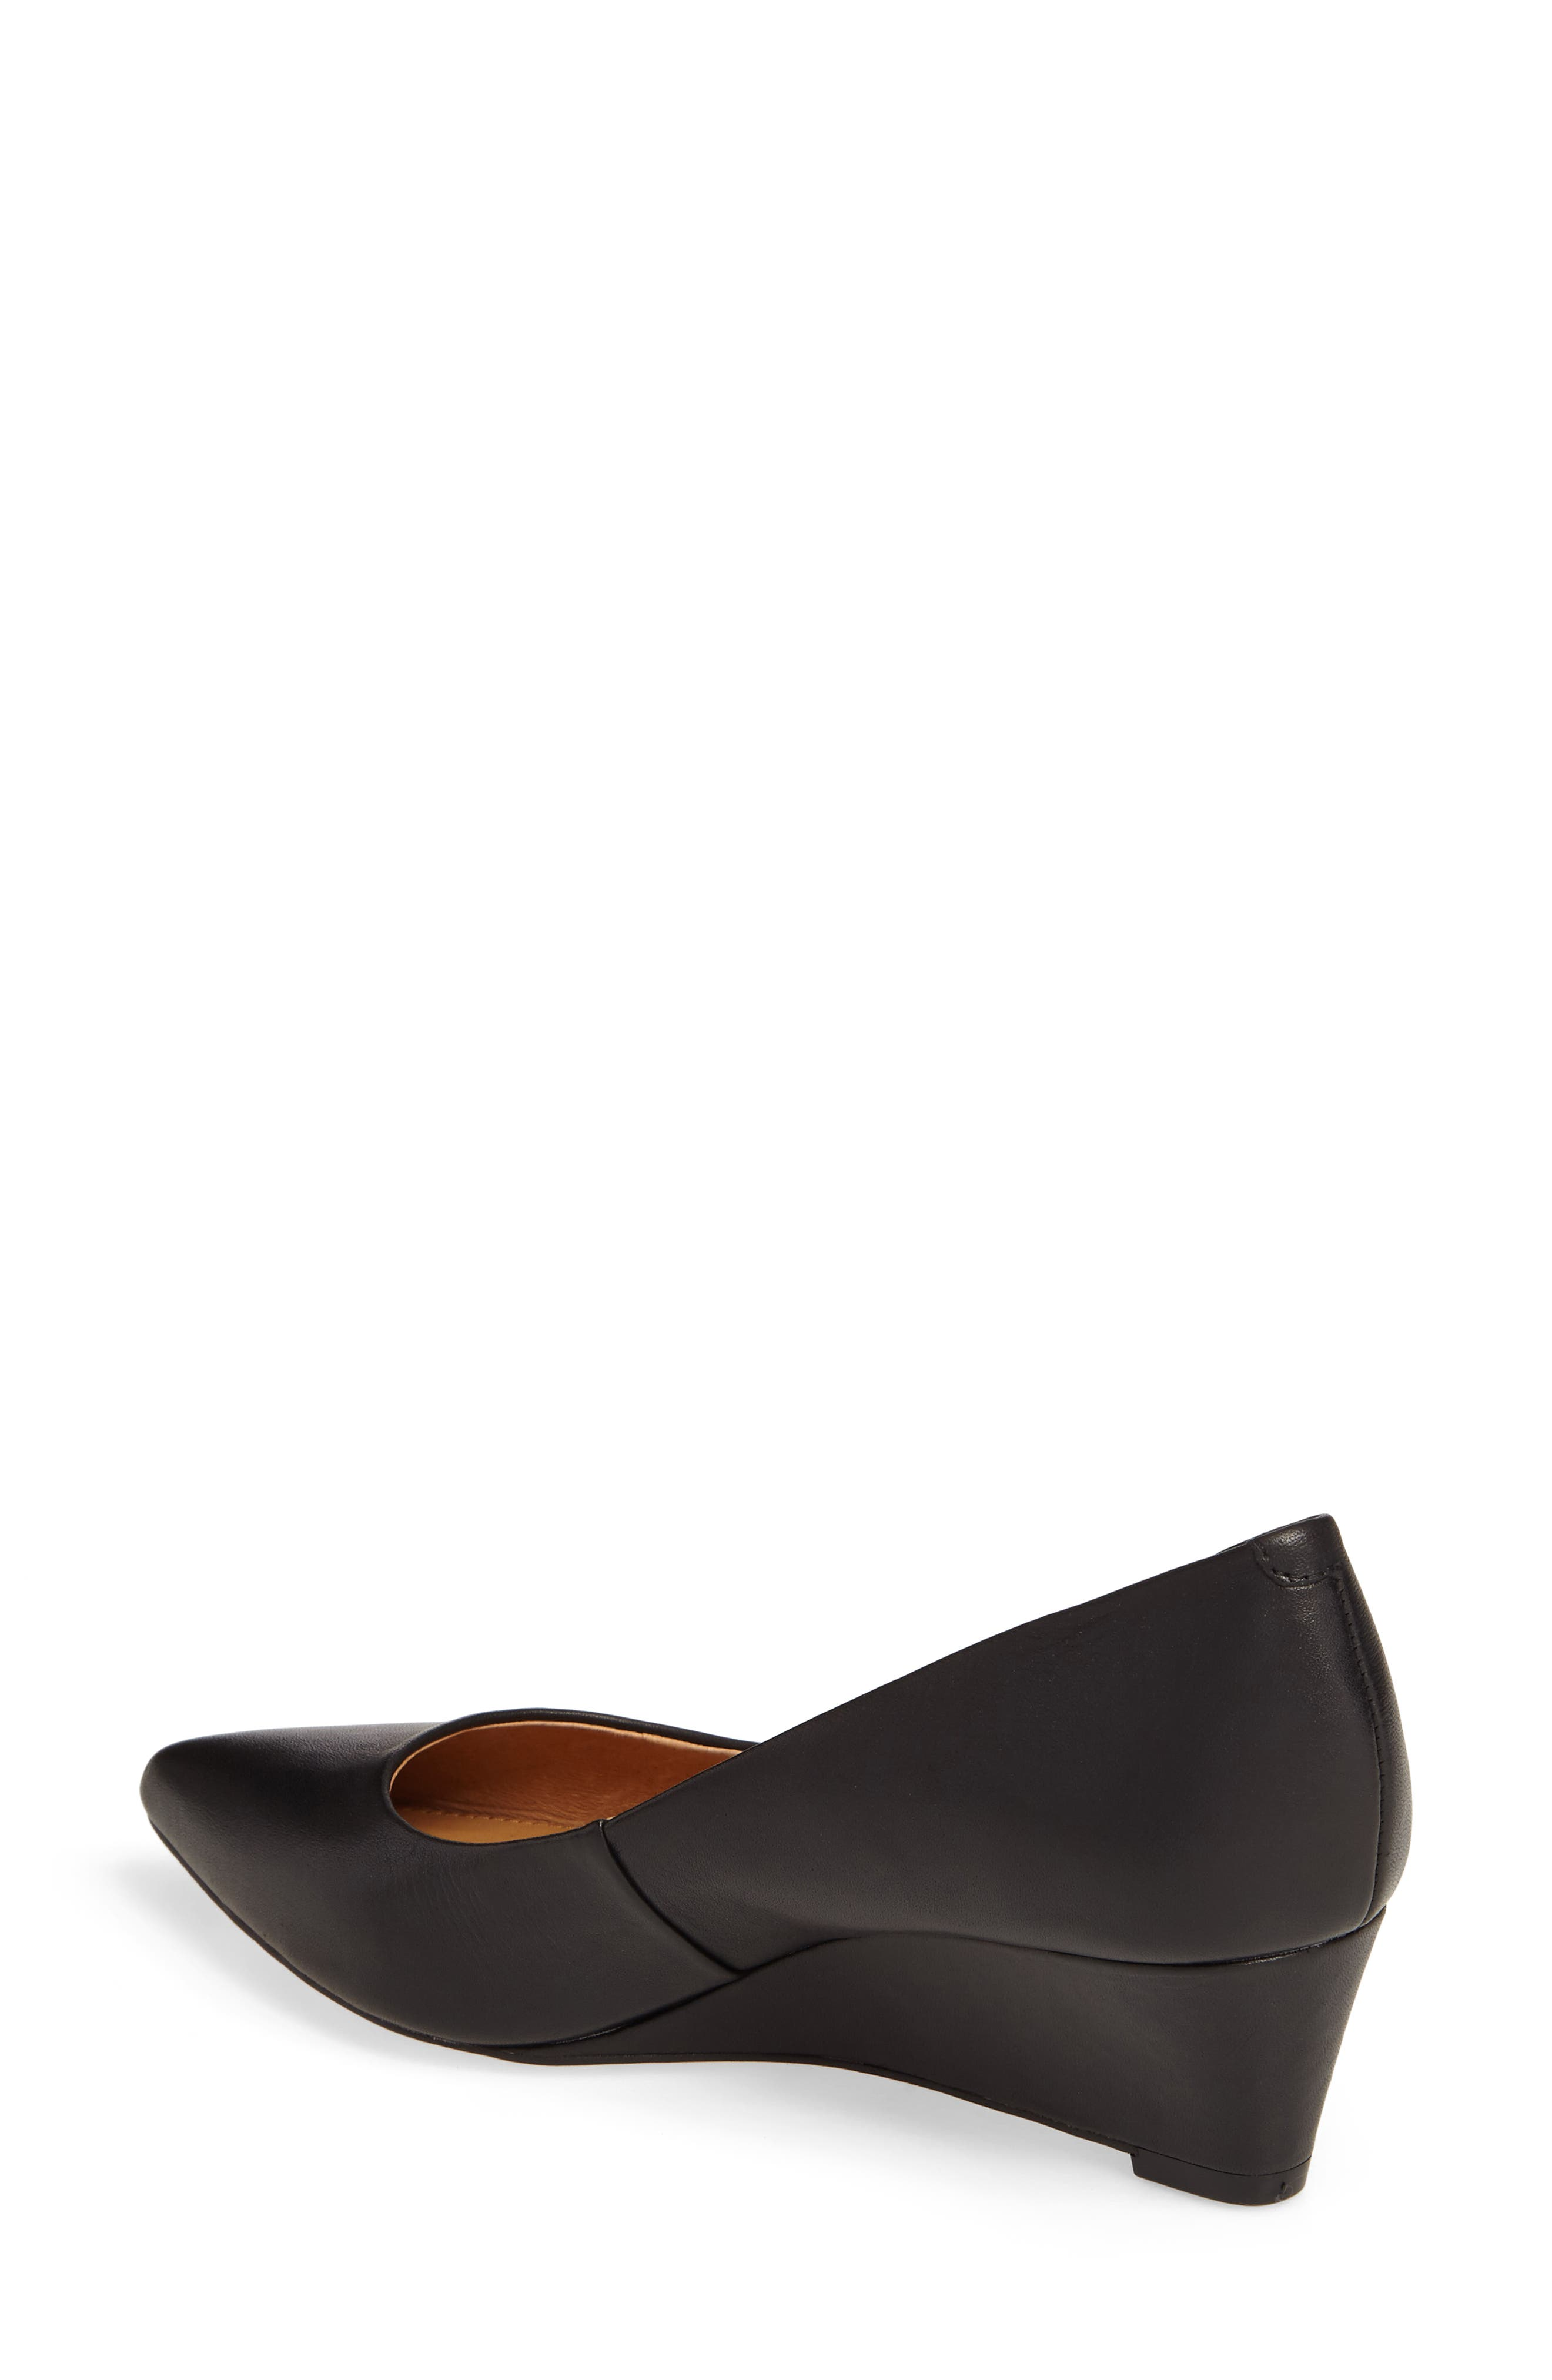 Nelly Pointy Toe Wedge Pump,                             Alternate thumbnail 2, color,                             Black Leather